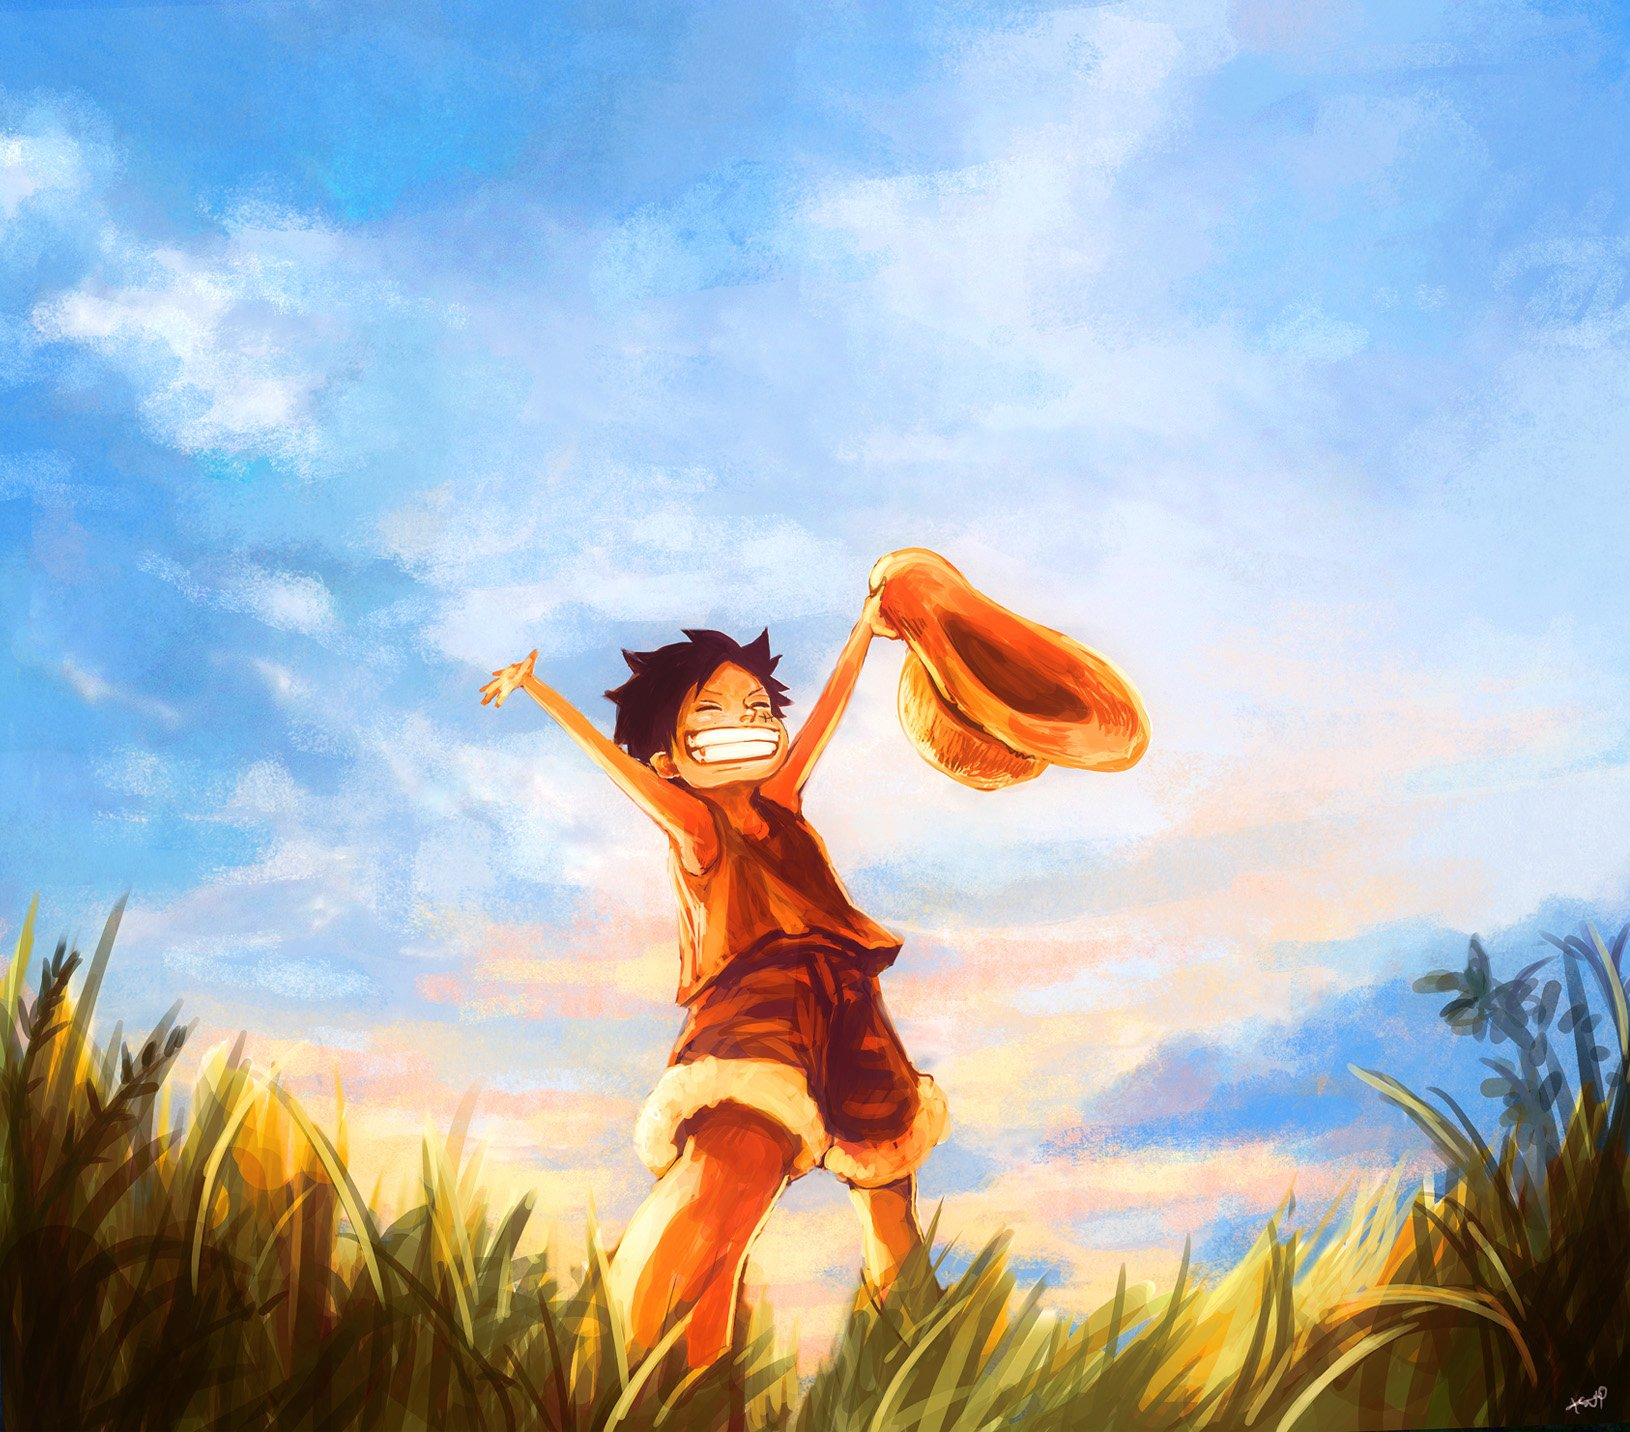 One Piece Wallpapers Luffy 72 Background Pictures: Monkey D. Luffy Wallpaper And Background Image